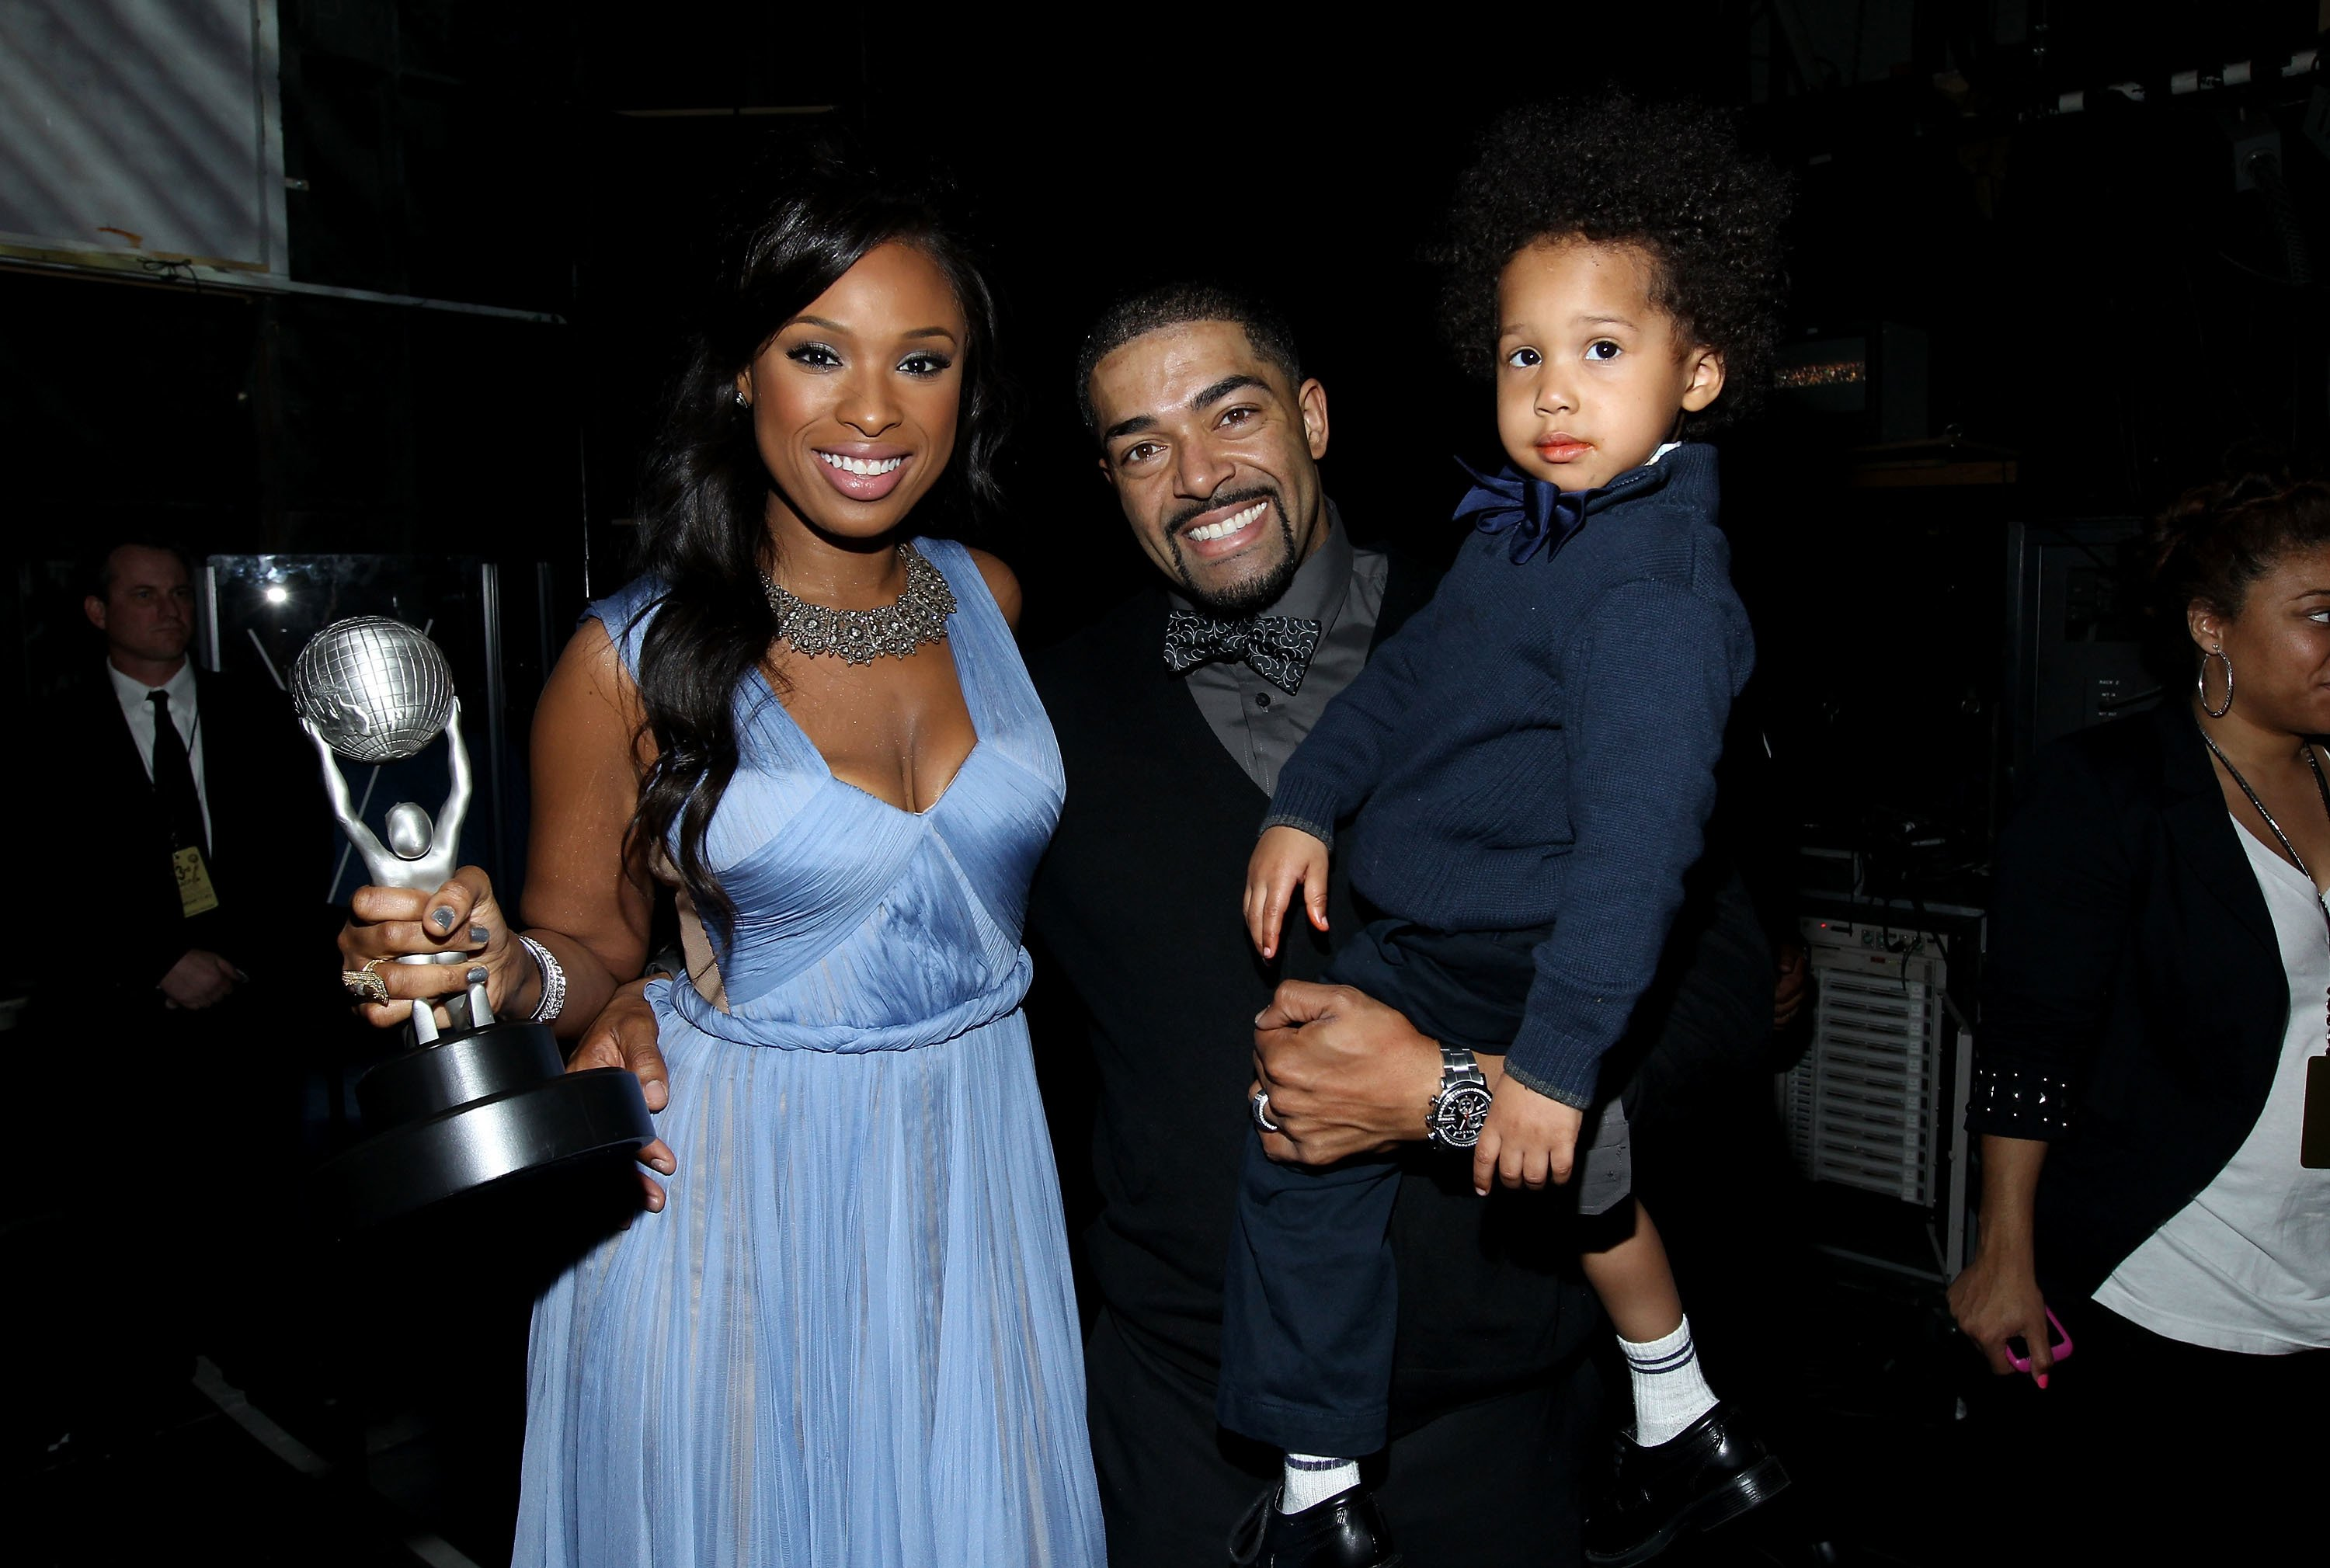 Jennifer Hudson, David Otunga, and son David Daniel Otunga Jr. attend the 43rd NAACP Image Awards held at The Shrine Auditorium on February 17, 2012. | Photo: Getty Images